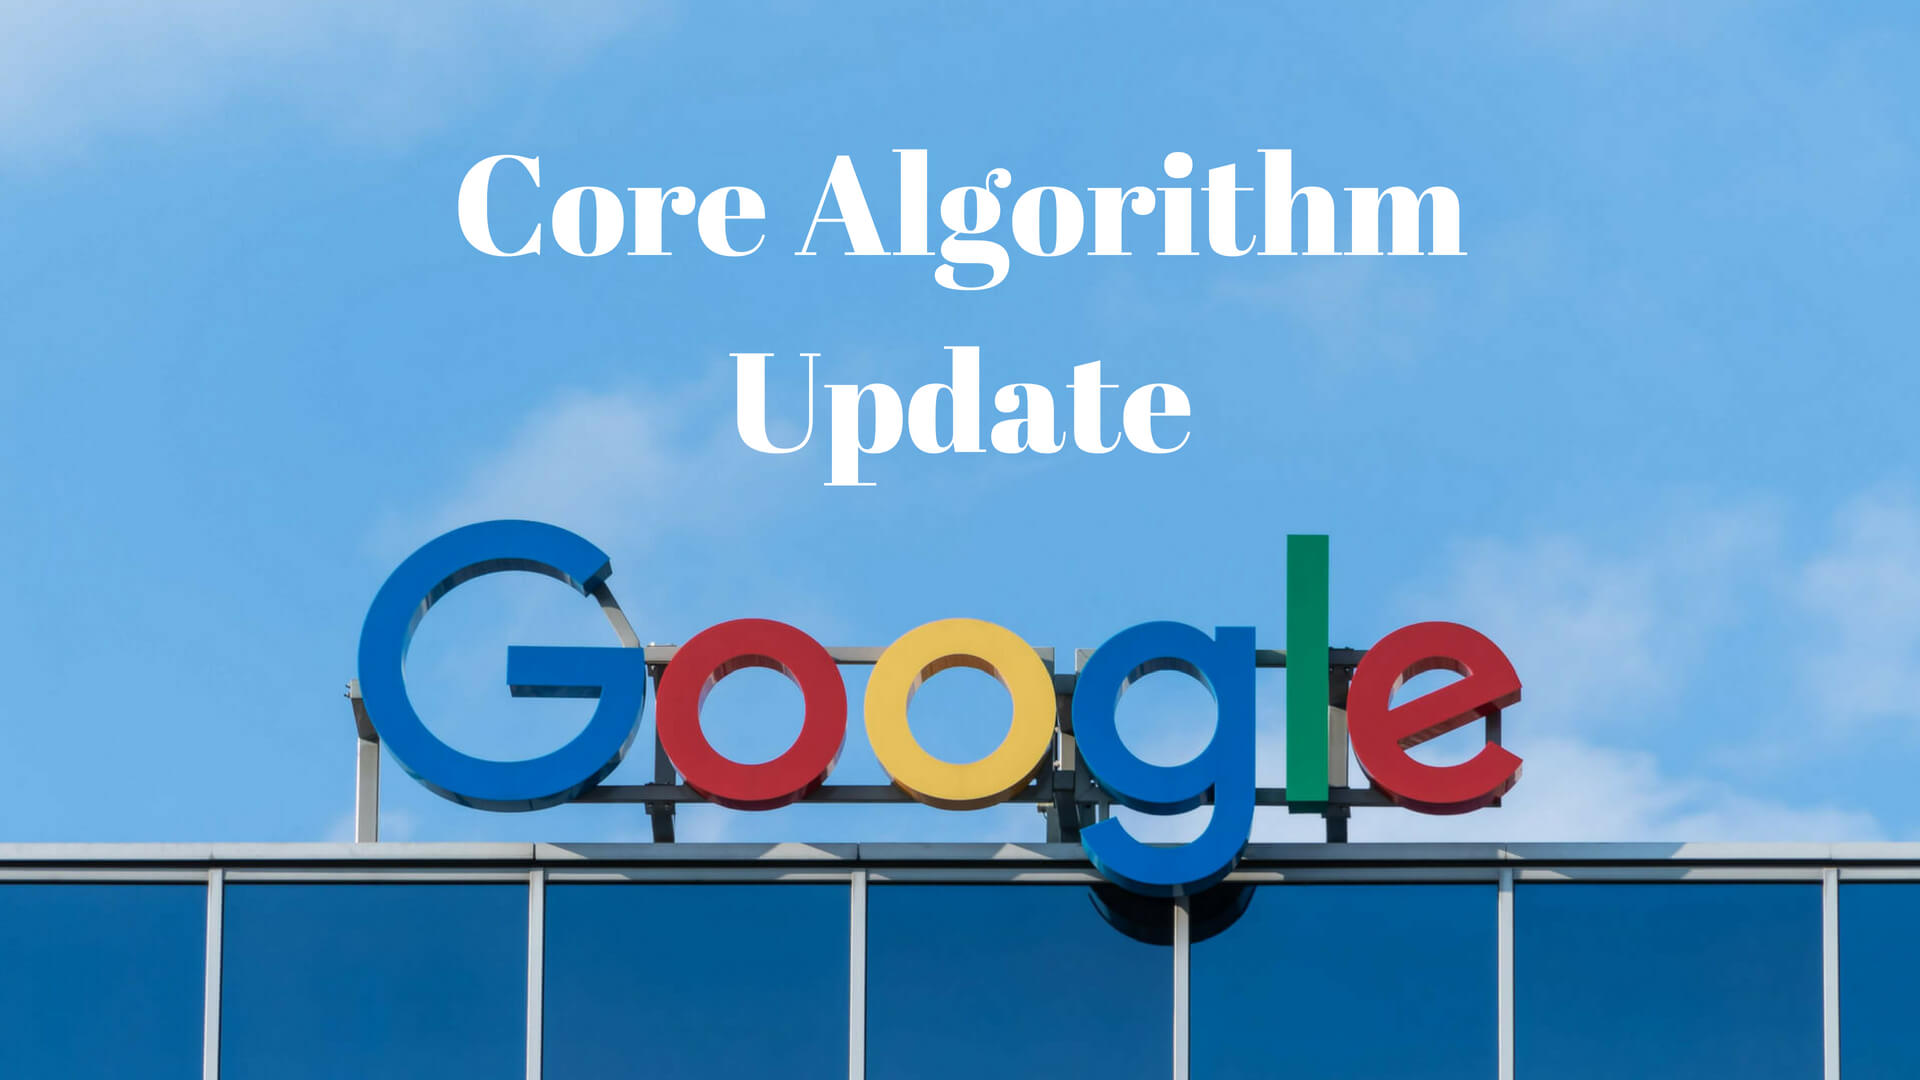 what Google's broad core algorithm update is